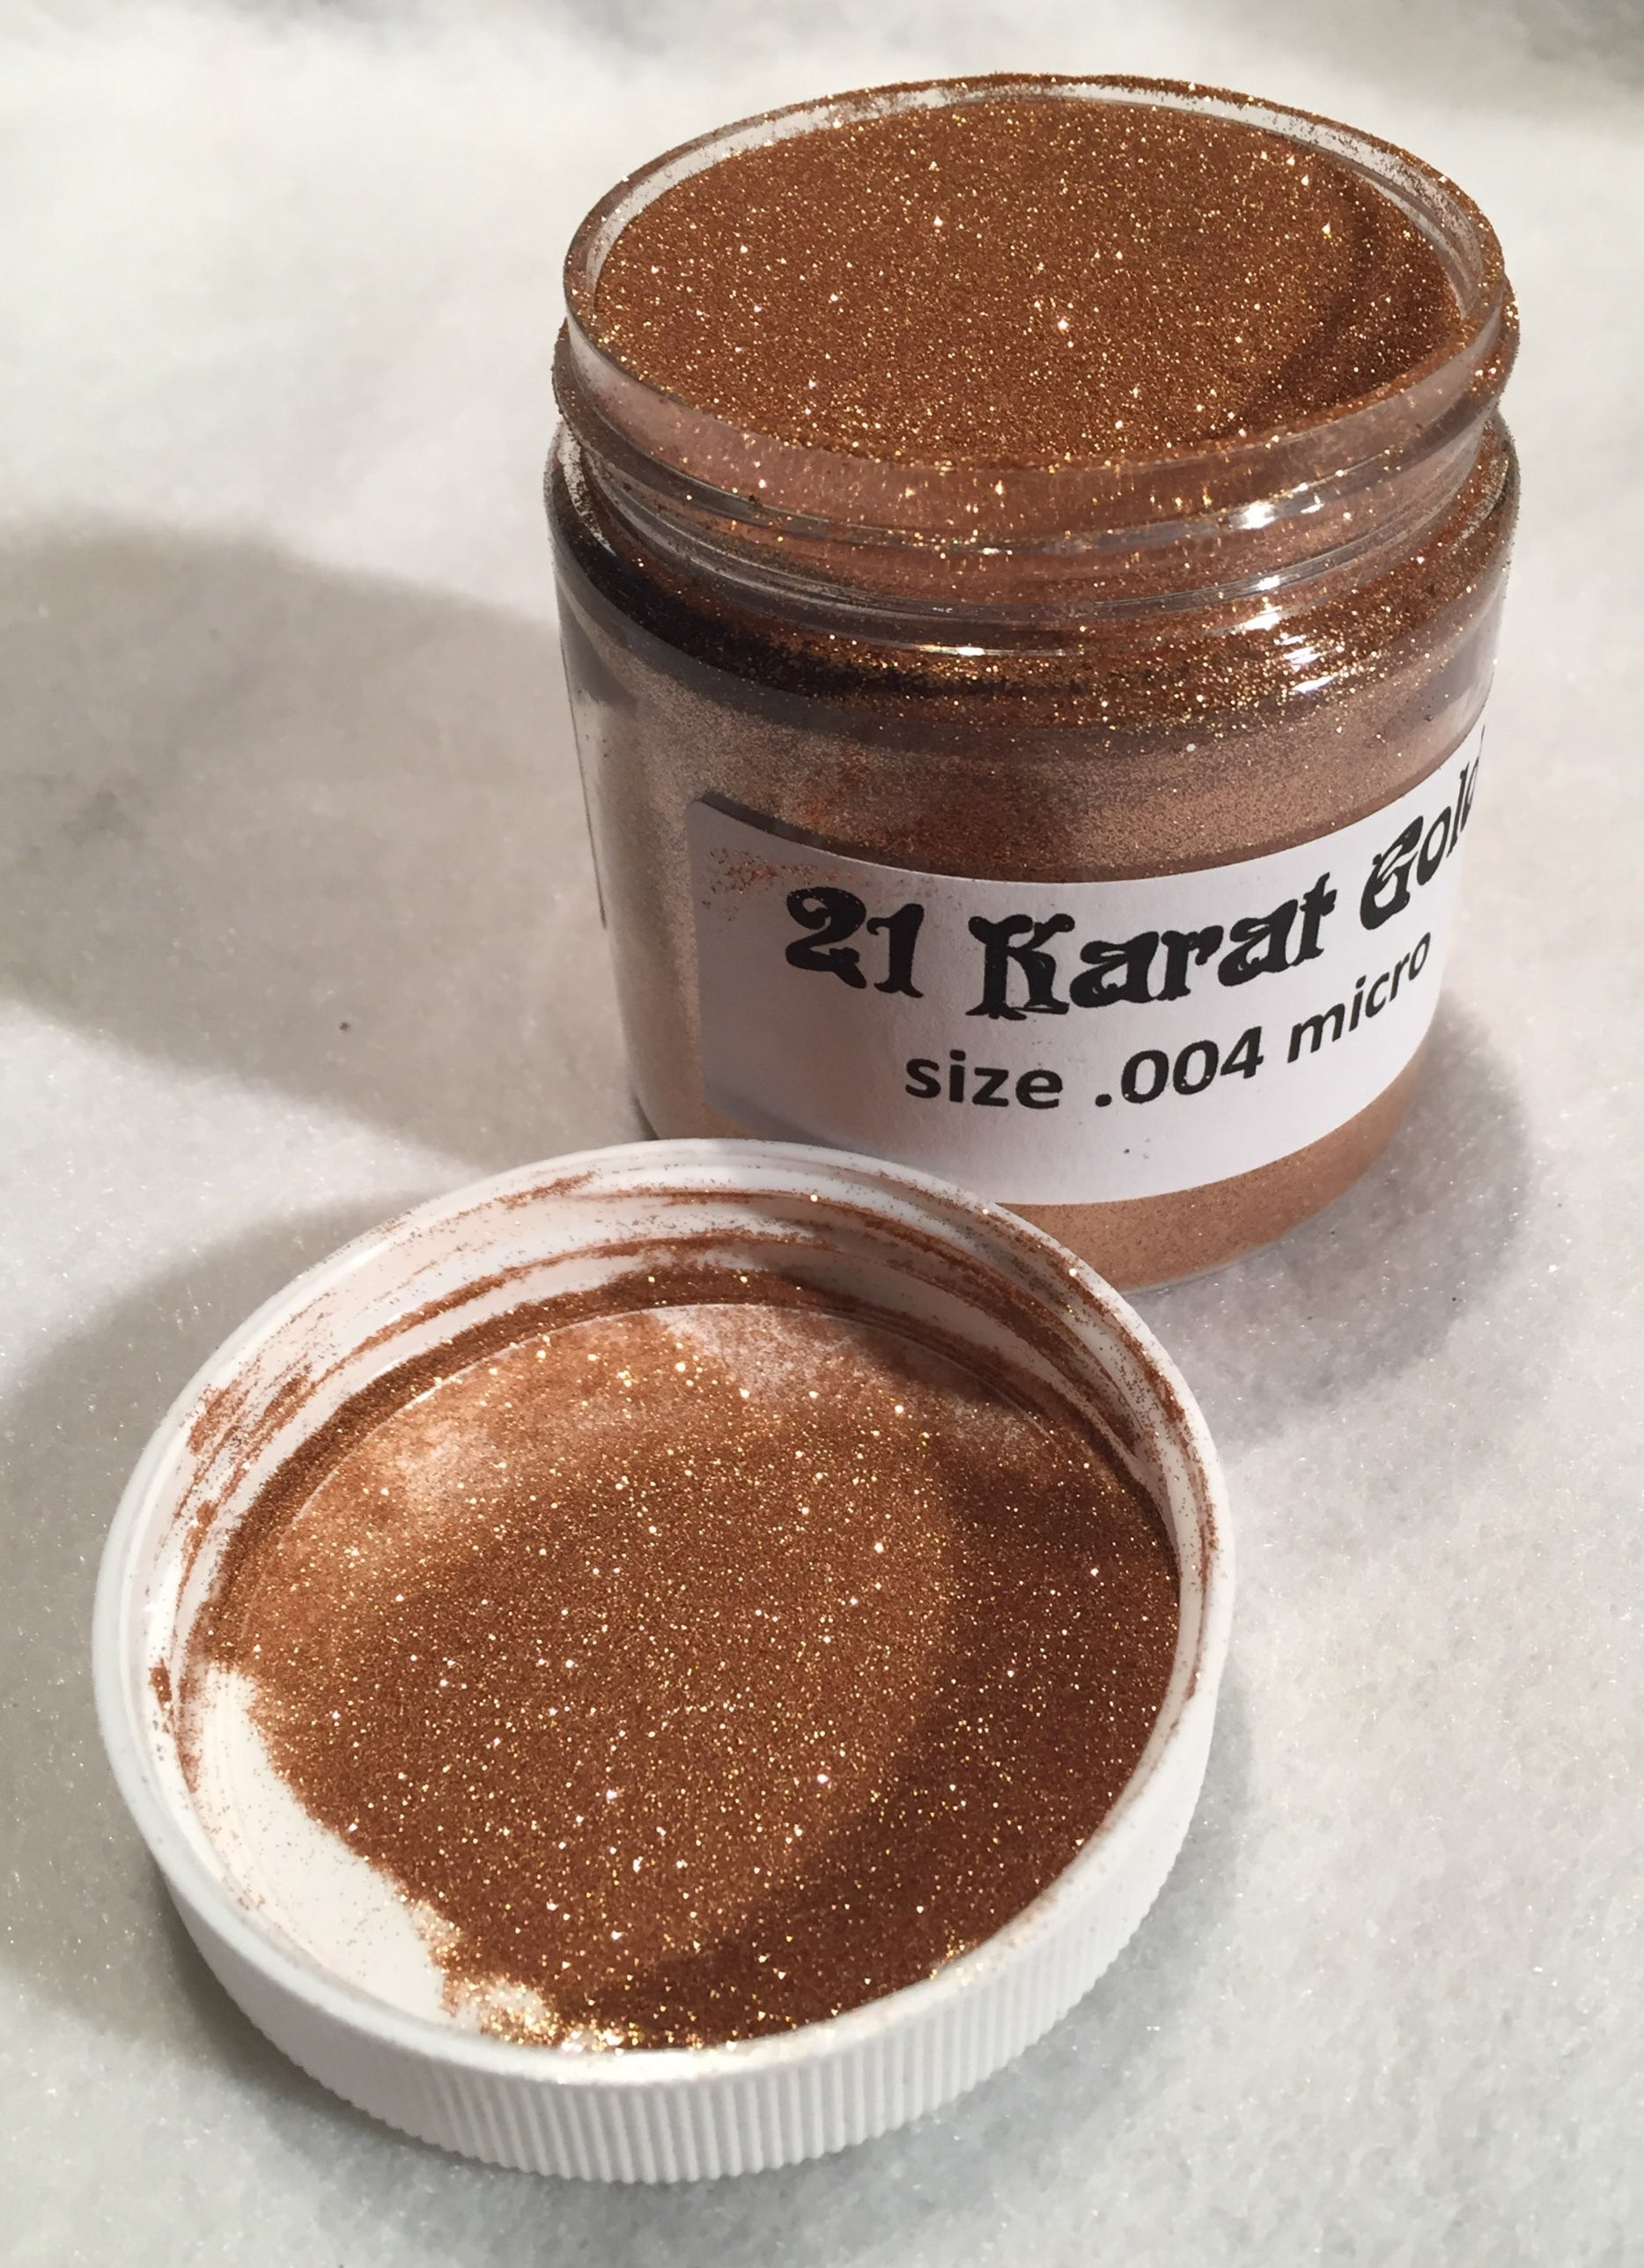 21 Karat Gold Flake 4 oz